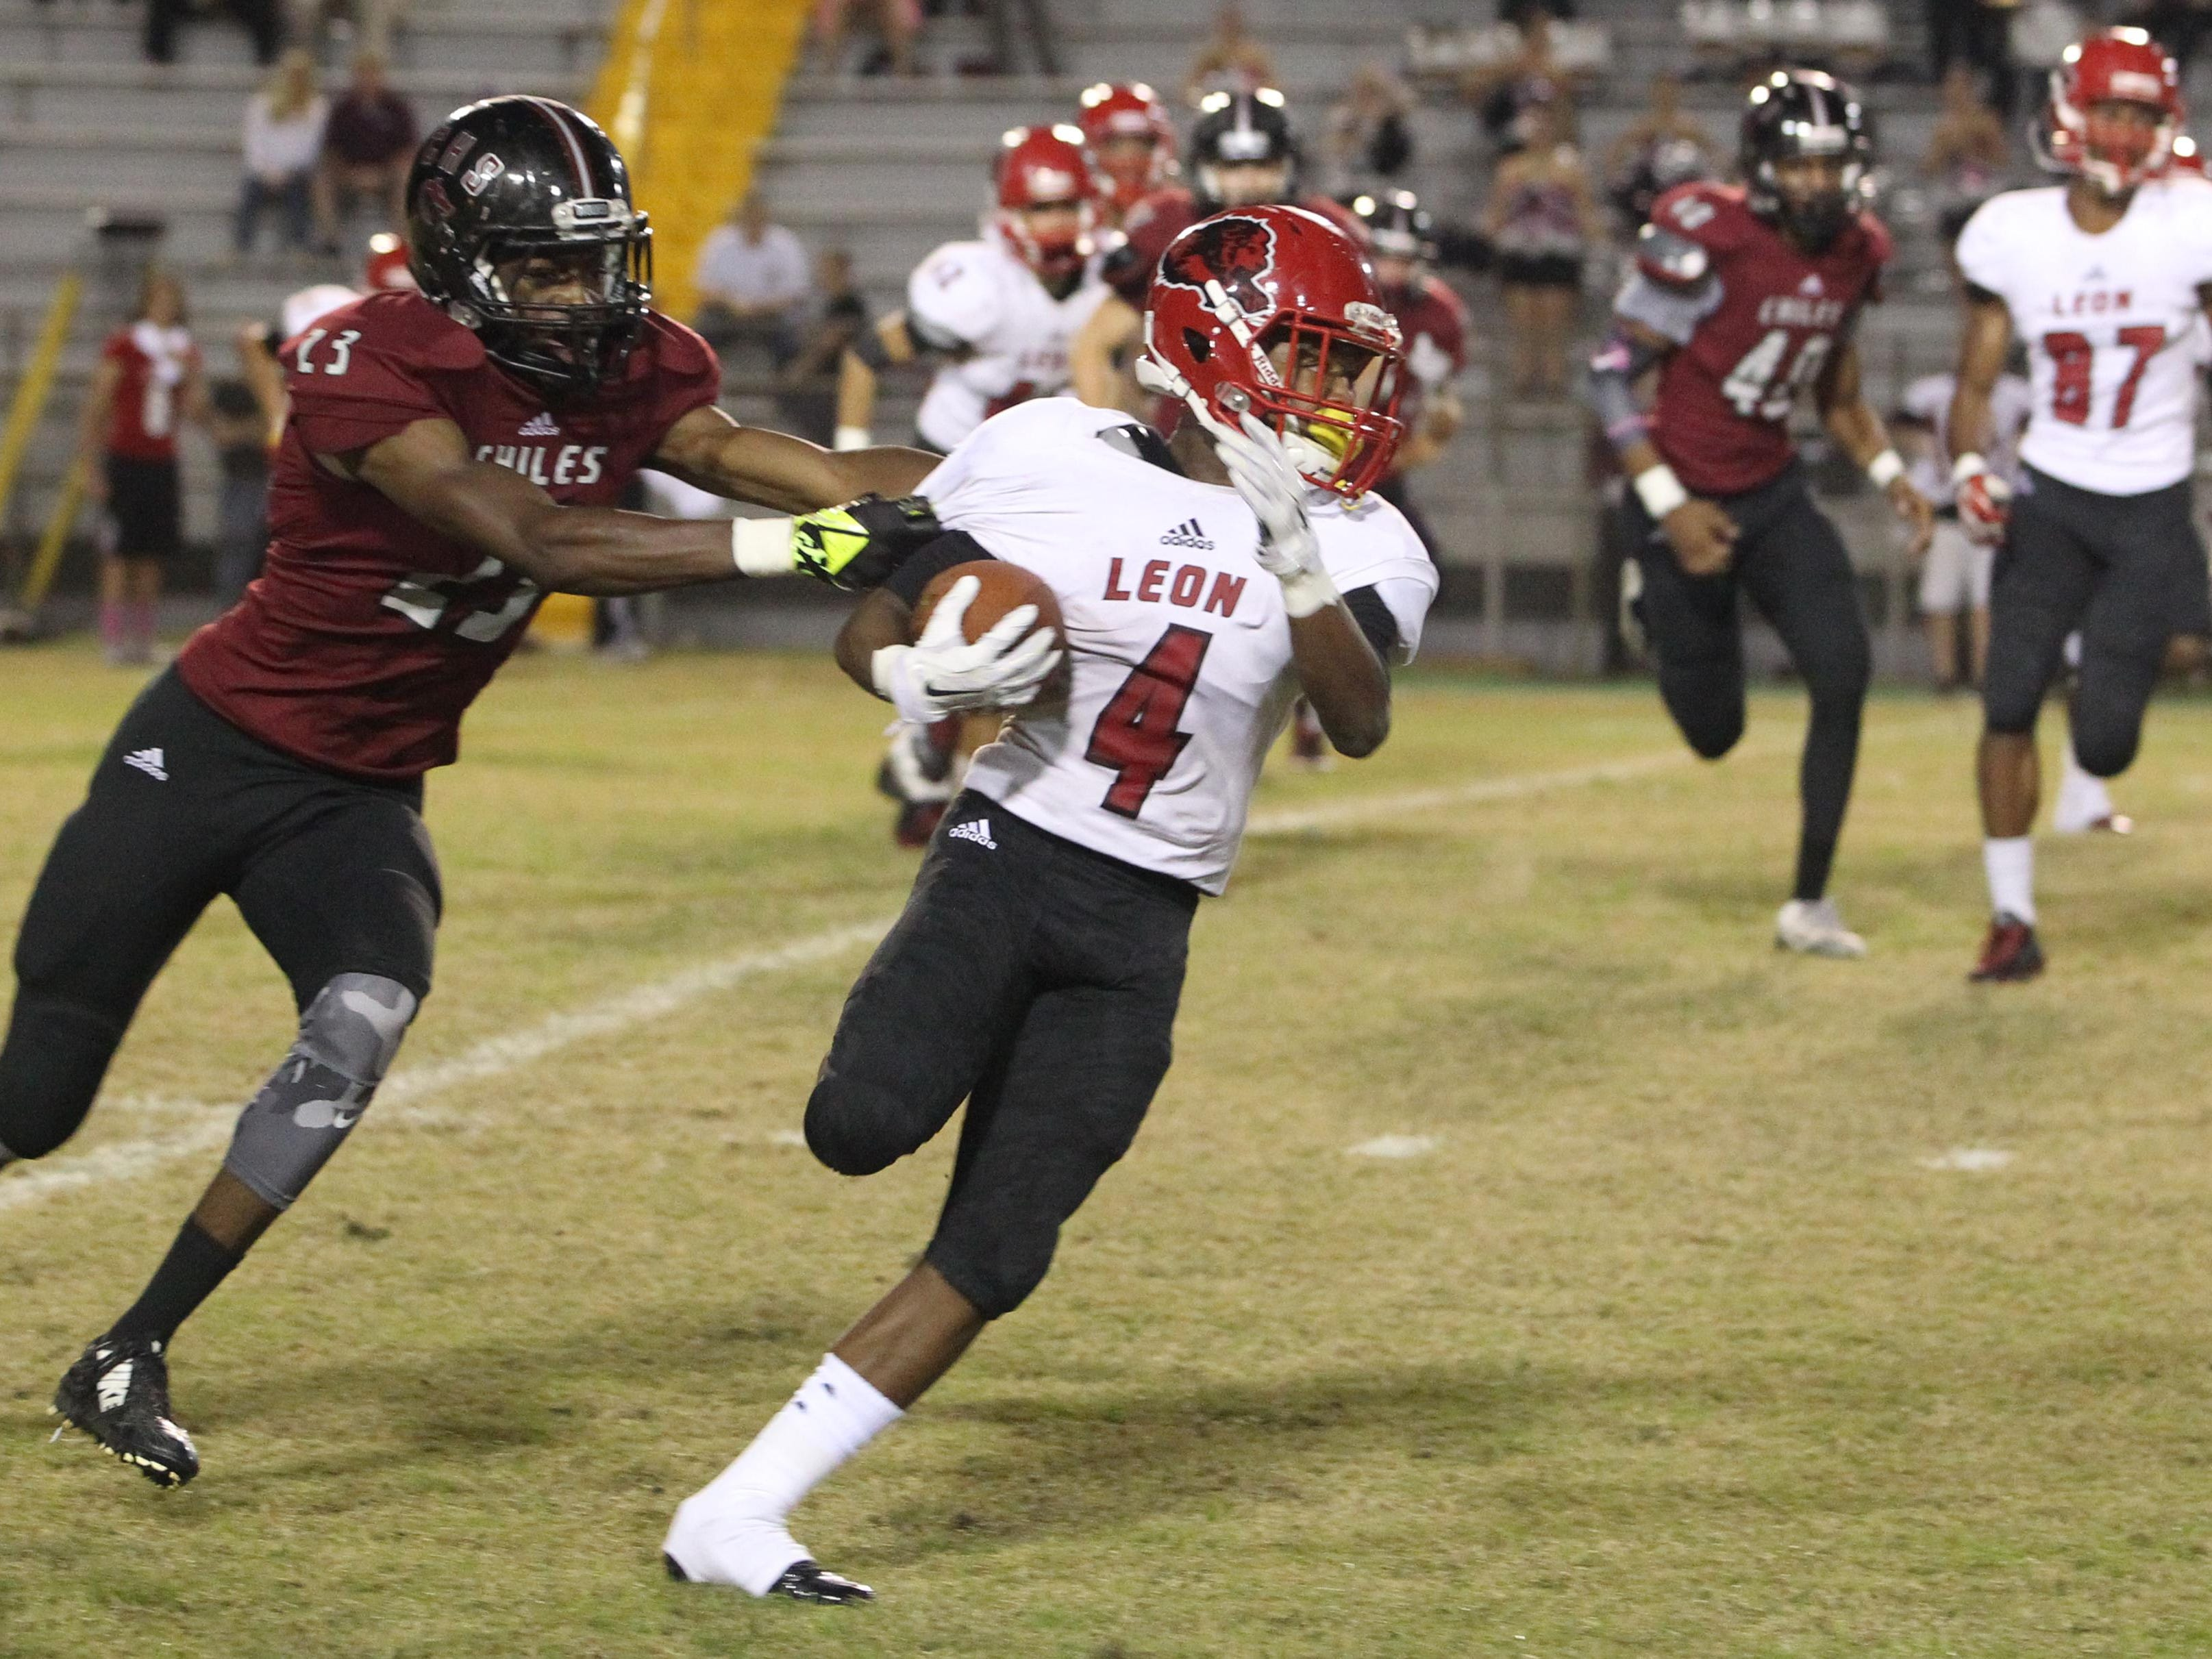 Leon's Darquez Brutton runs away from Chiles' Drake Frison on a kickoff return. Leon won 22-21 over Chiles at Gene Cox Stadium, forcing a three-way tie in District 2-7A.